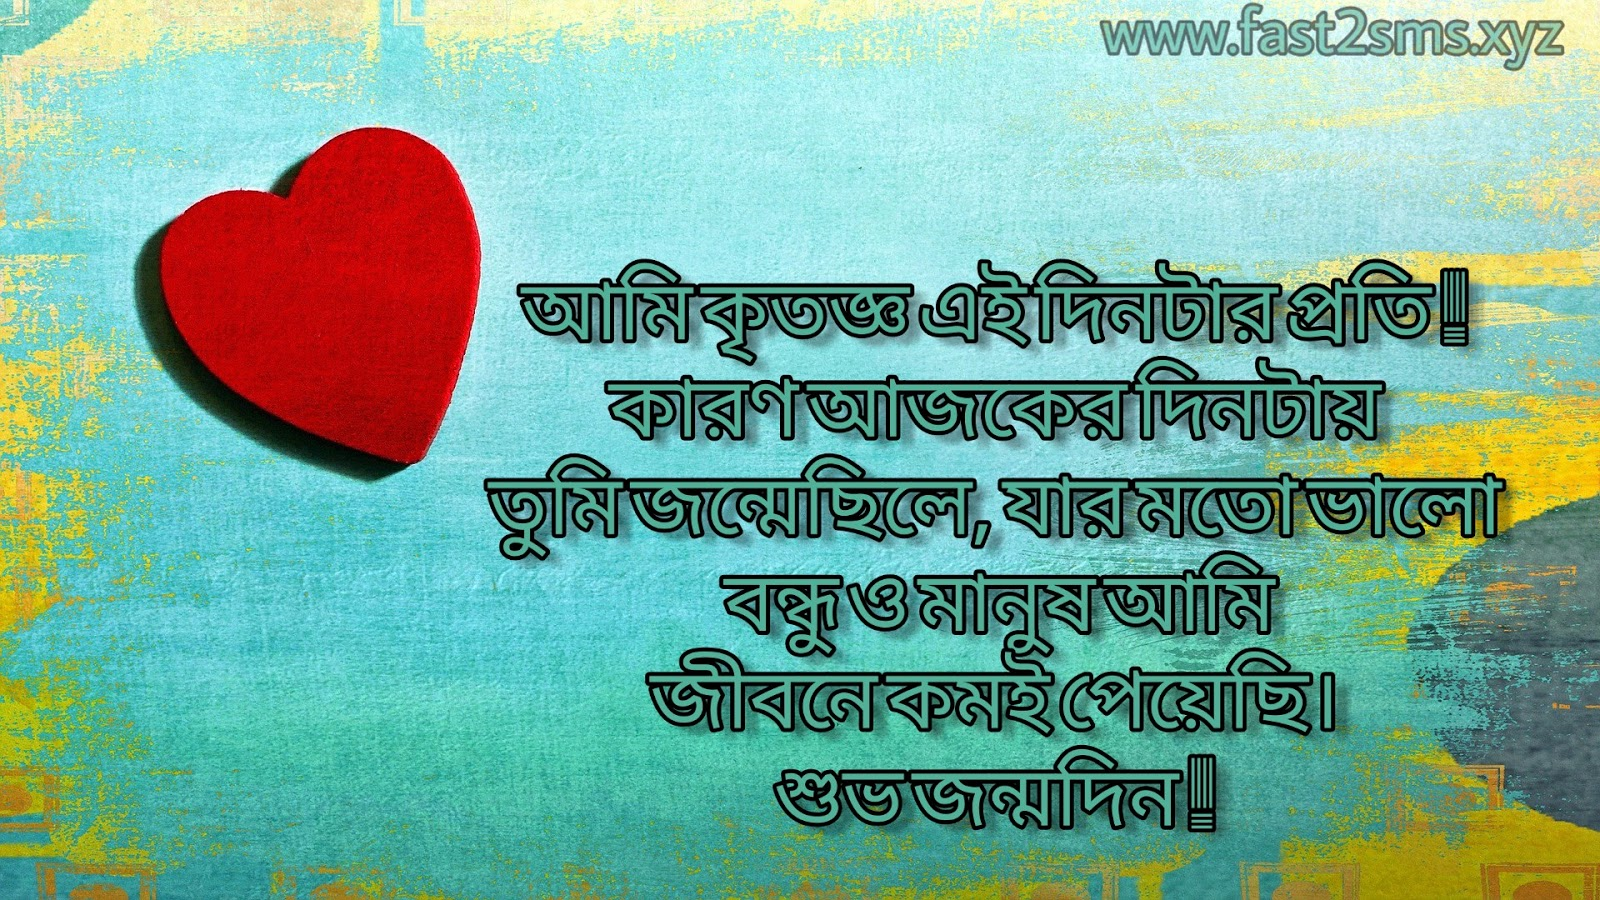 Happy Birthday Bangla Sms Bengali Birthday Image By Fast2sms